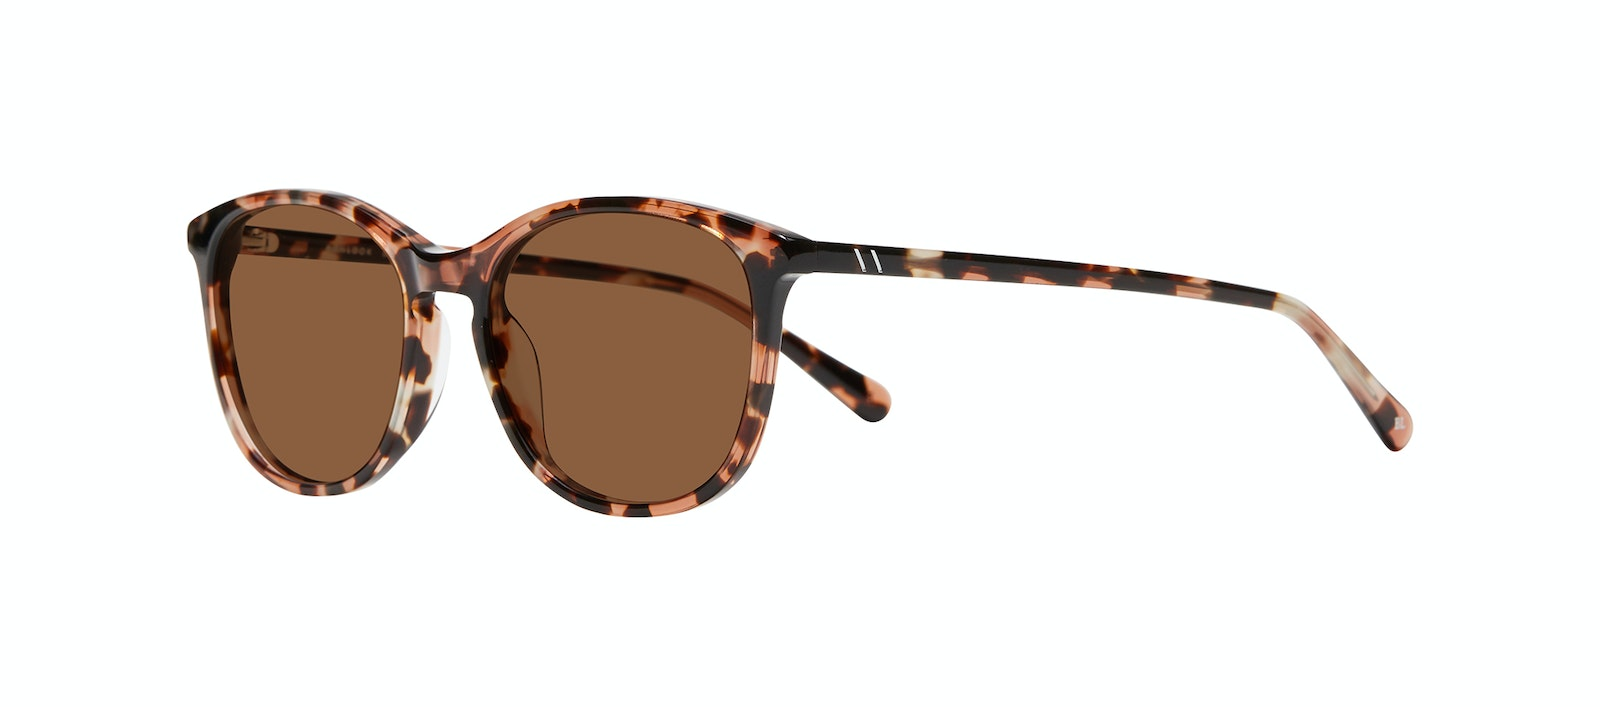 Affordable Fashion Glasses Rectangle Square Round Sunglasses Women Nadine M Pink Tortoise Tilt